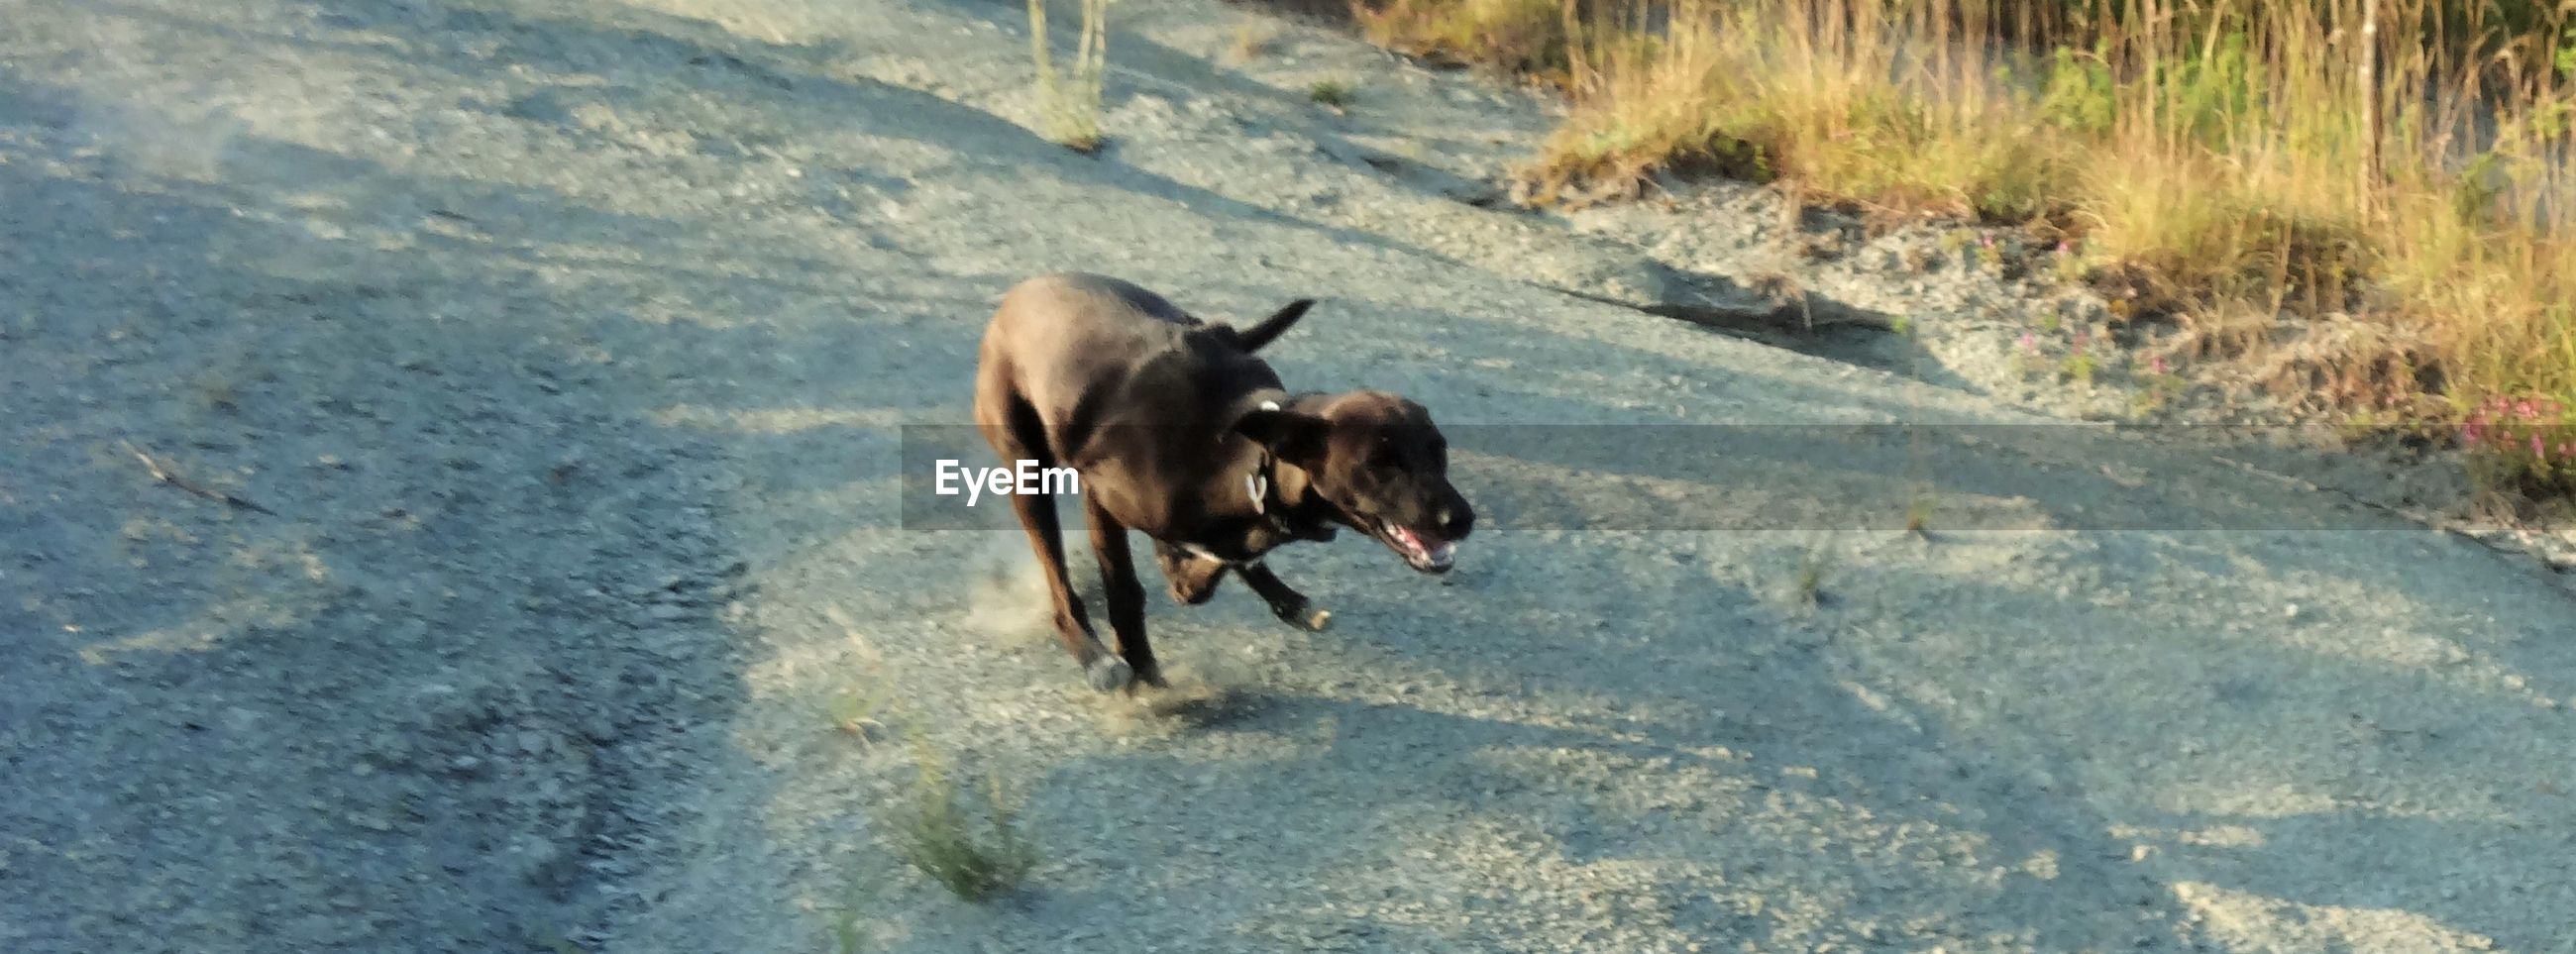 High angle view of dog running on sand